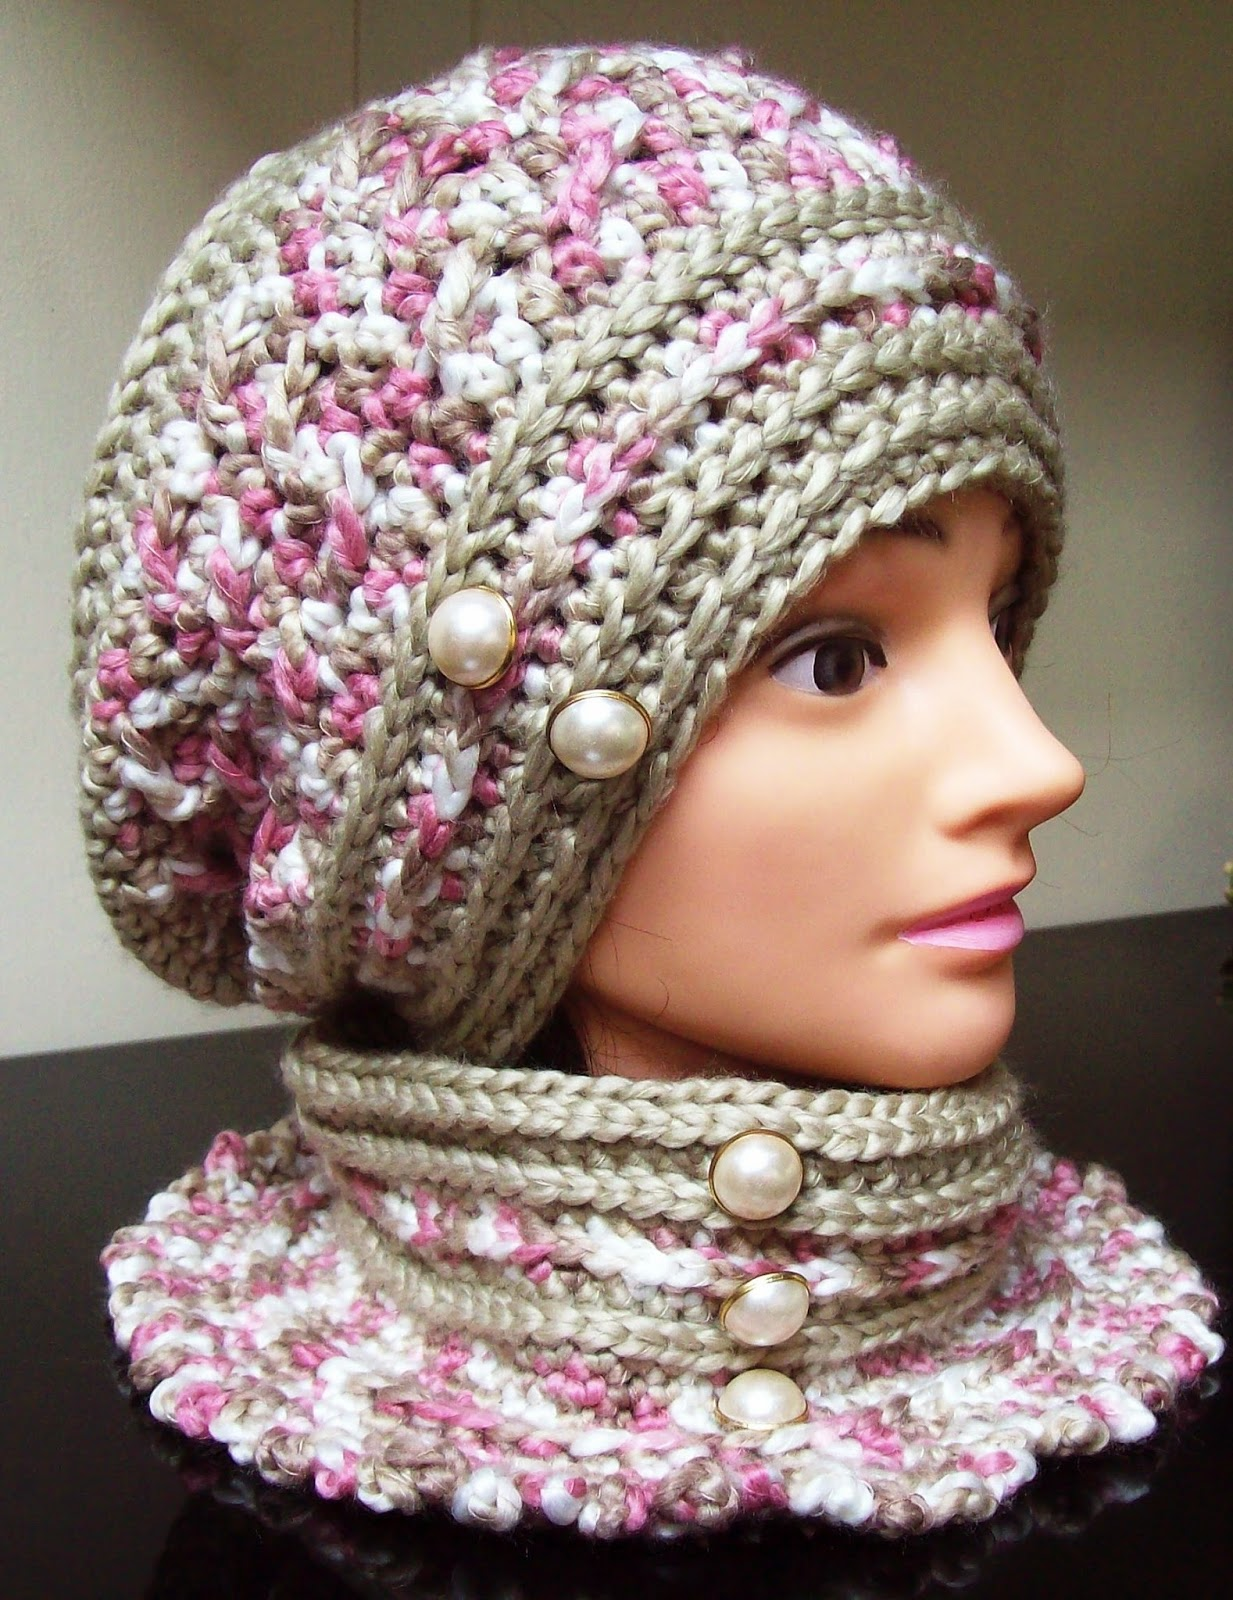 Crochet Patterns For Scarf And Hat : Free Crochet Patterns By Cats-Rockin-Crochet